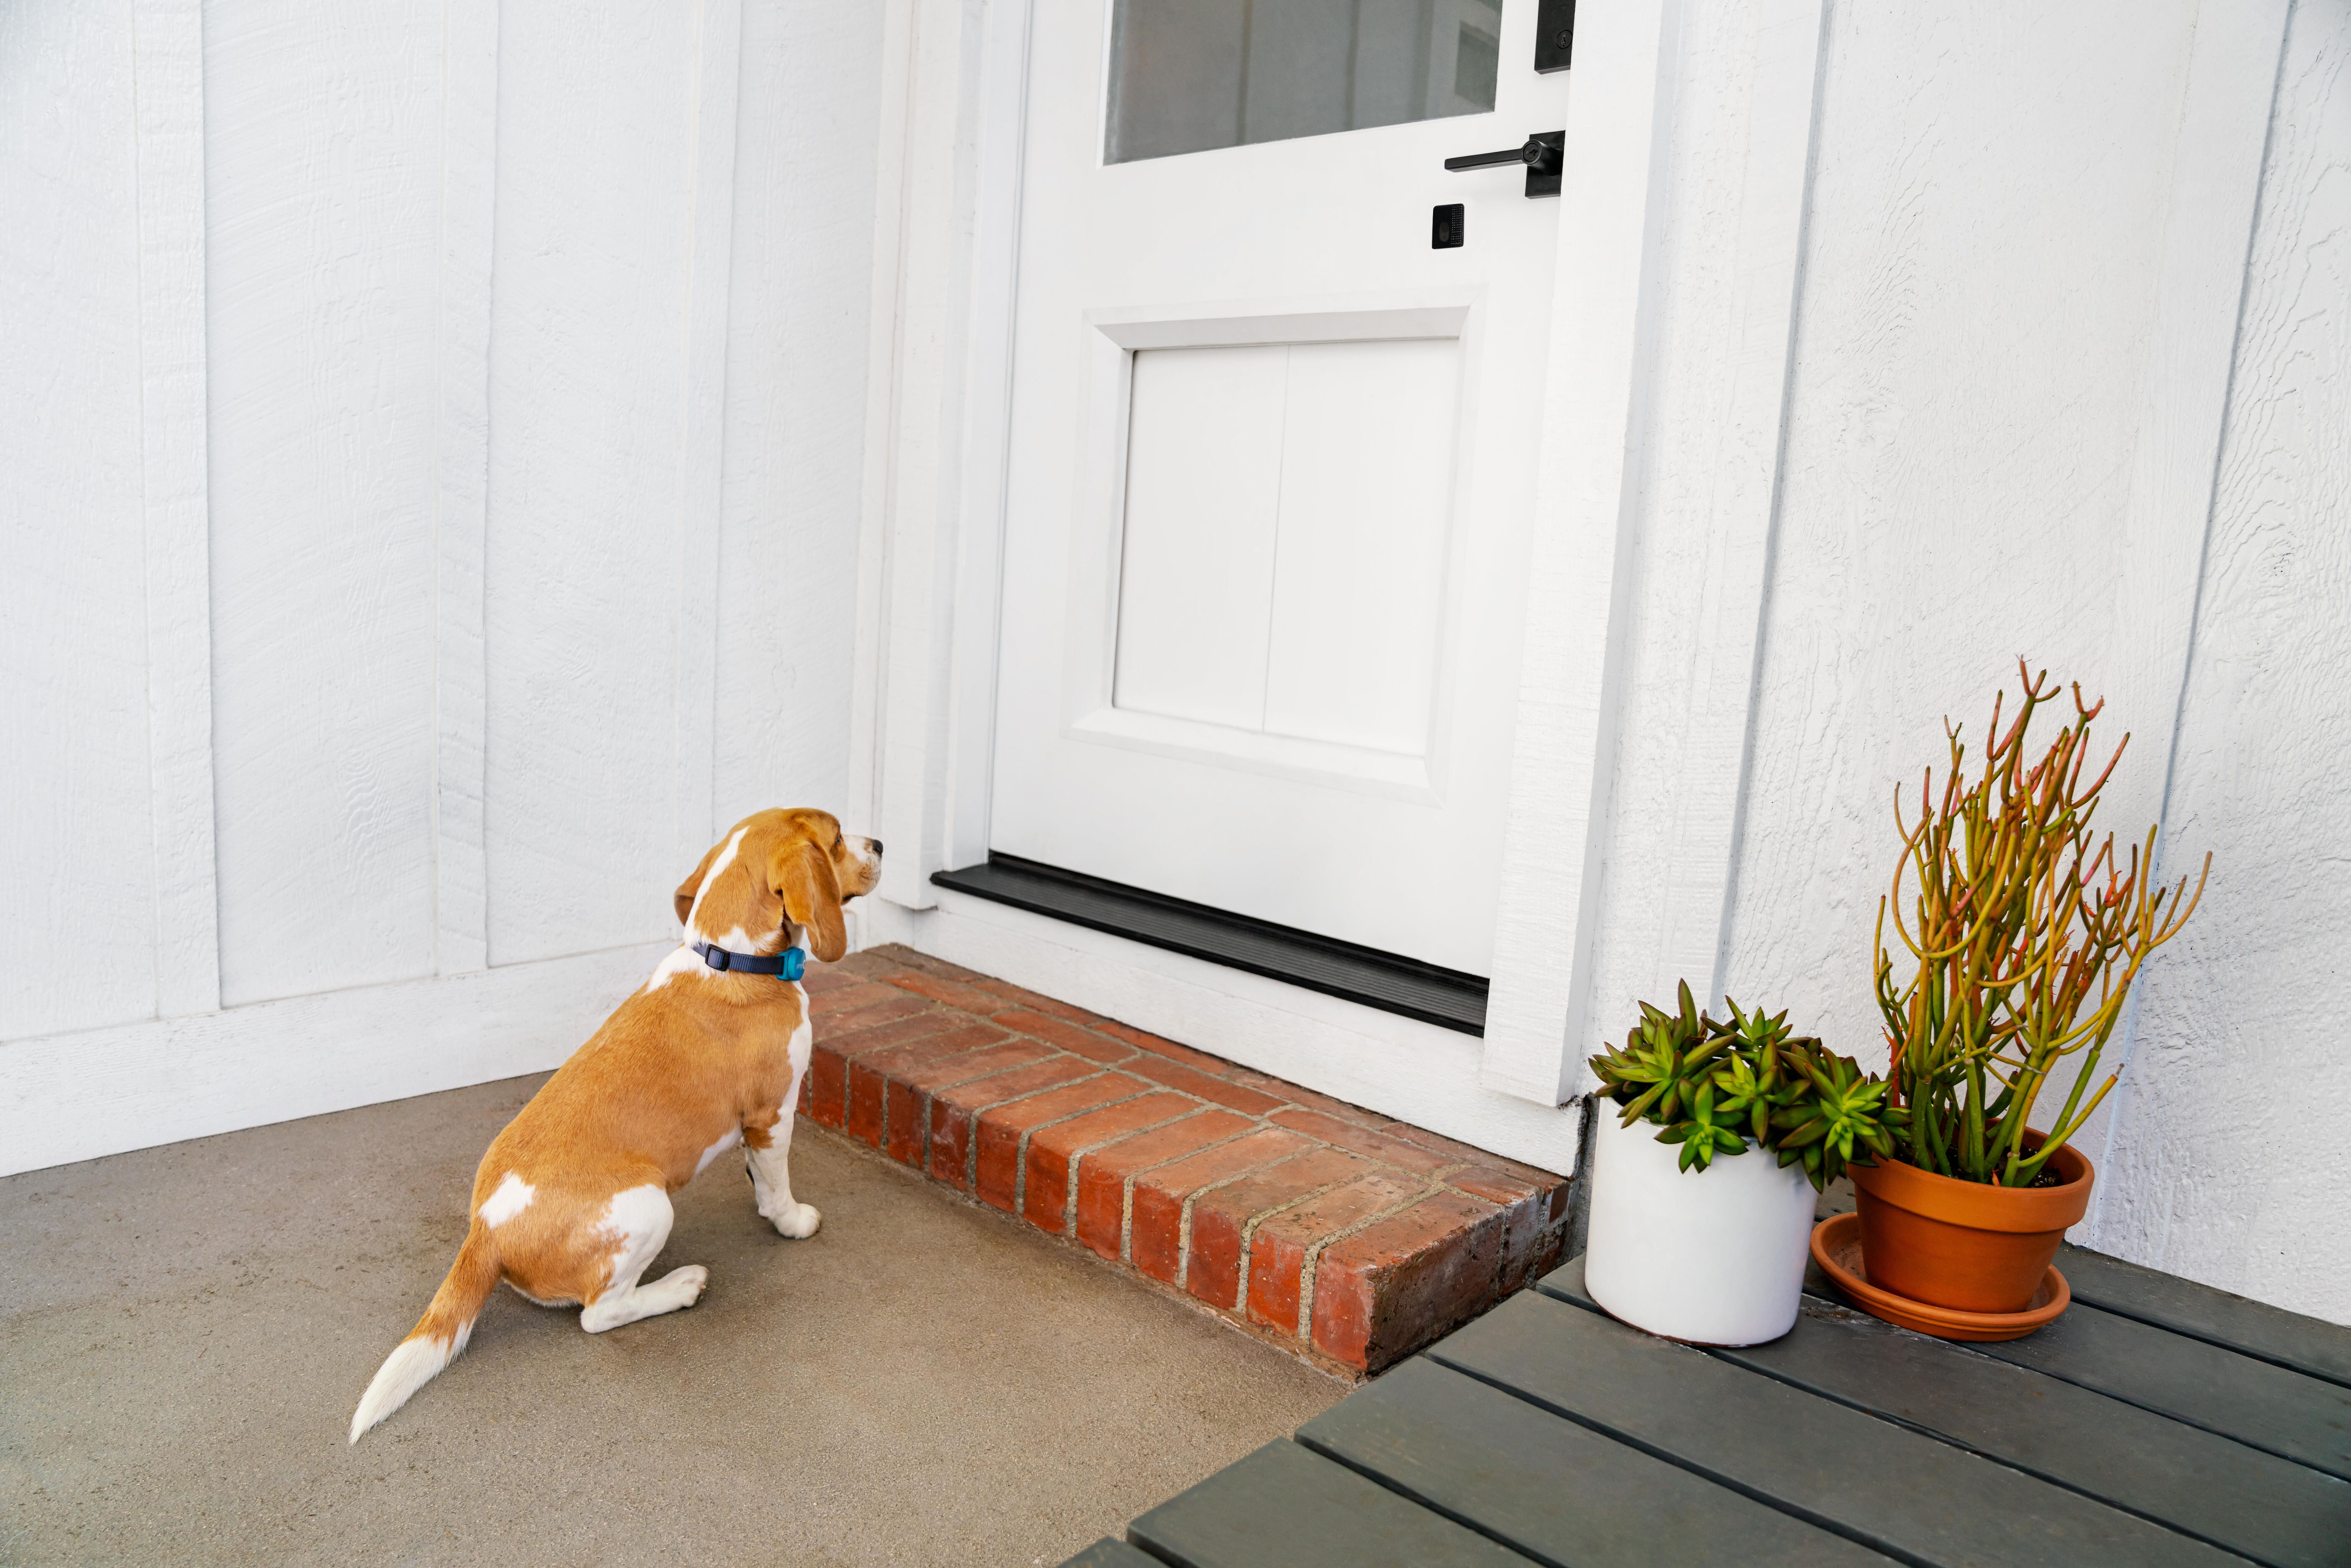 shot-17-dogdoor-outside-jumping-in-096-r5